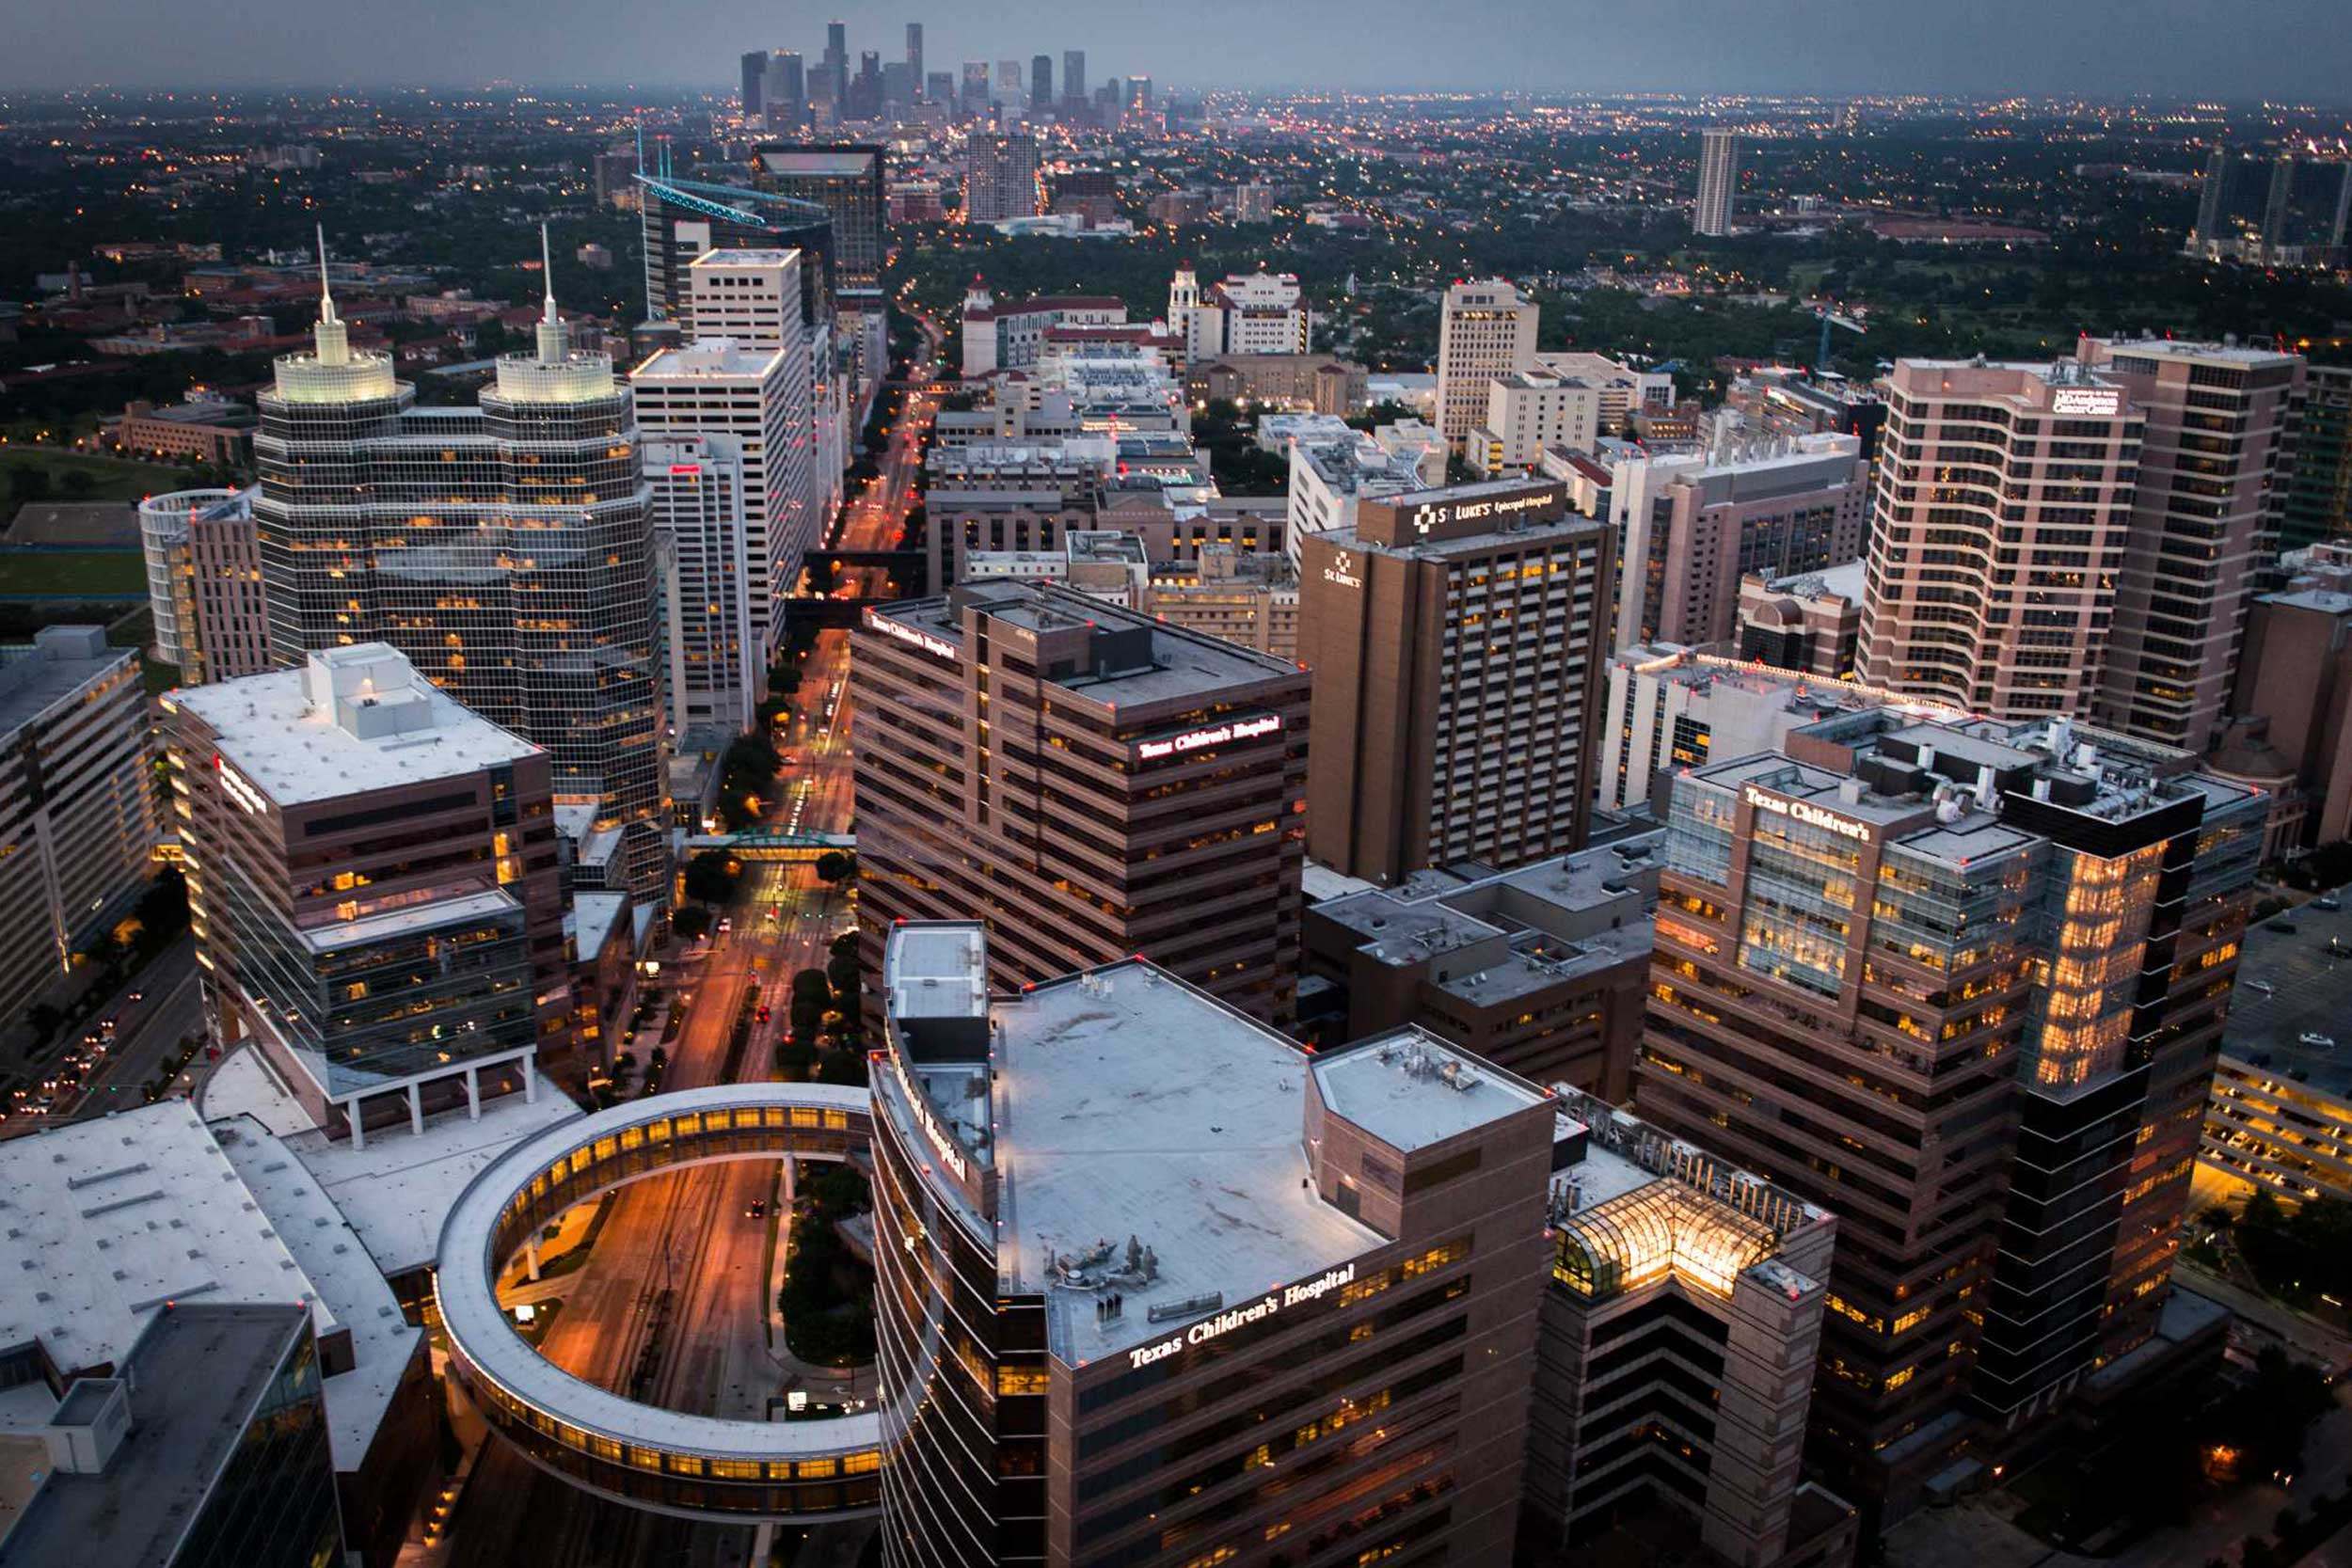 http://Aerial%20view%20of%20Texas%20Medical%20Center%20in%20Houston,%20Texas